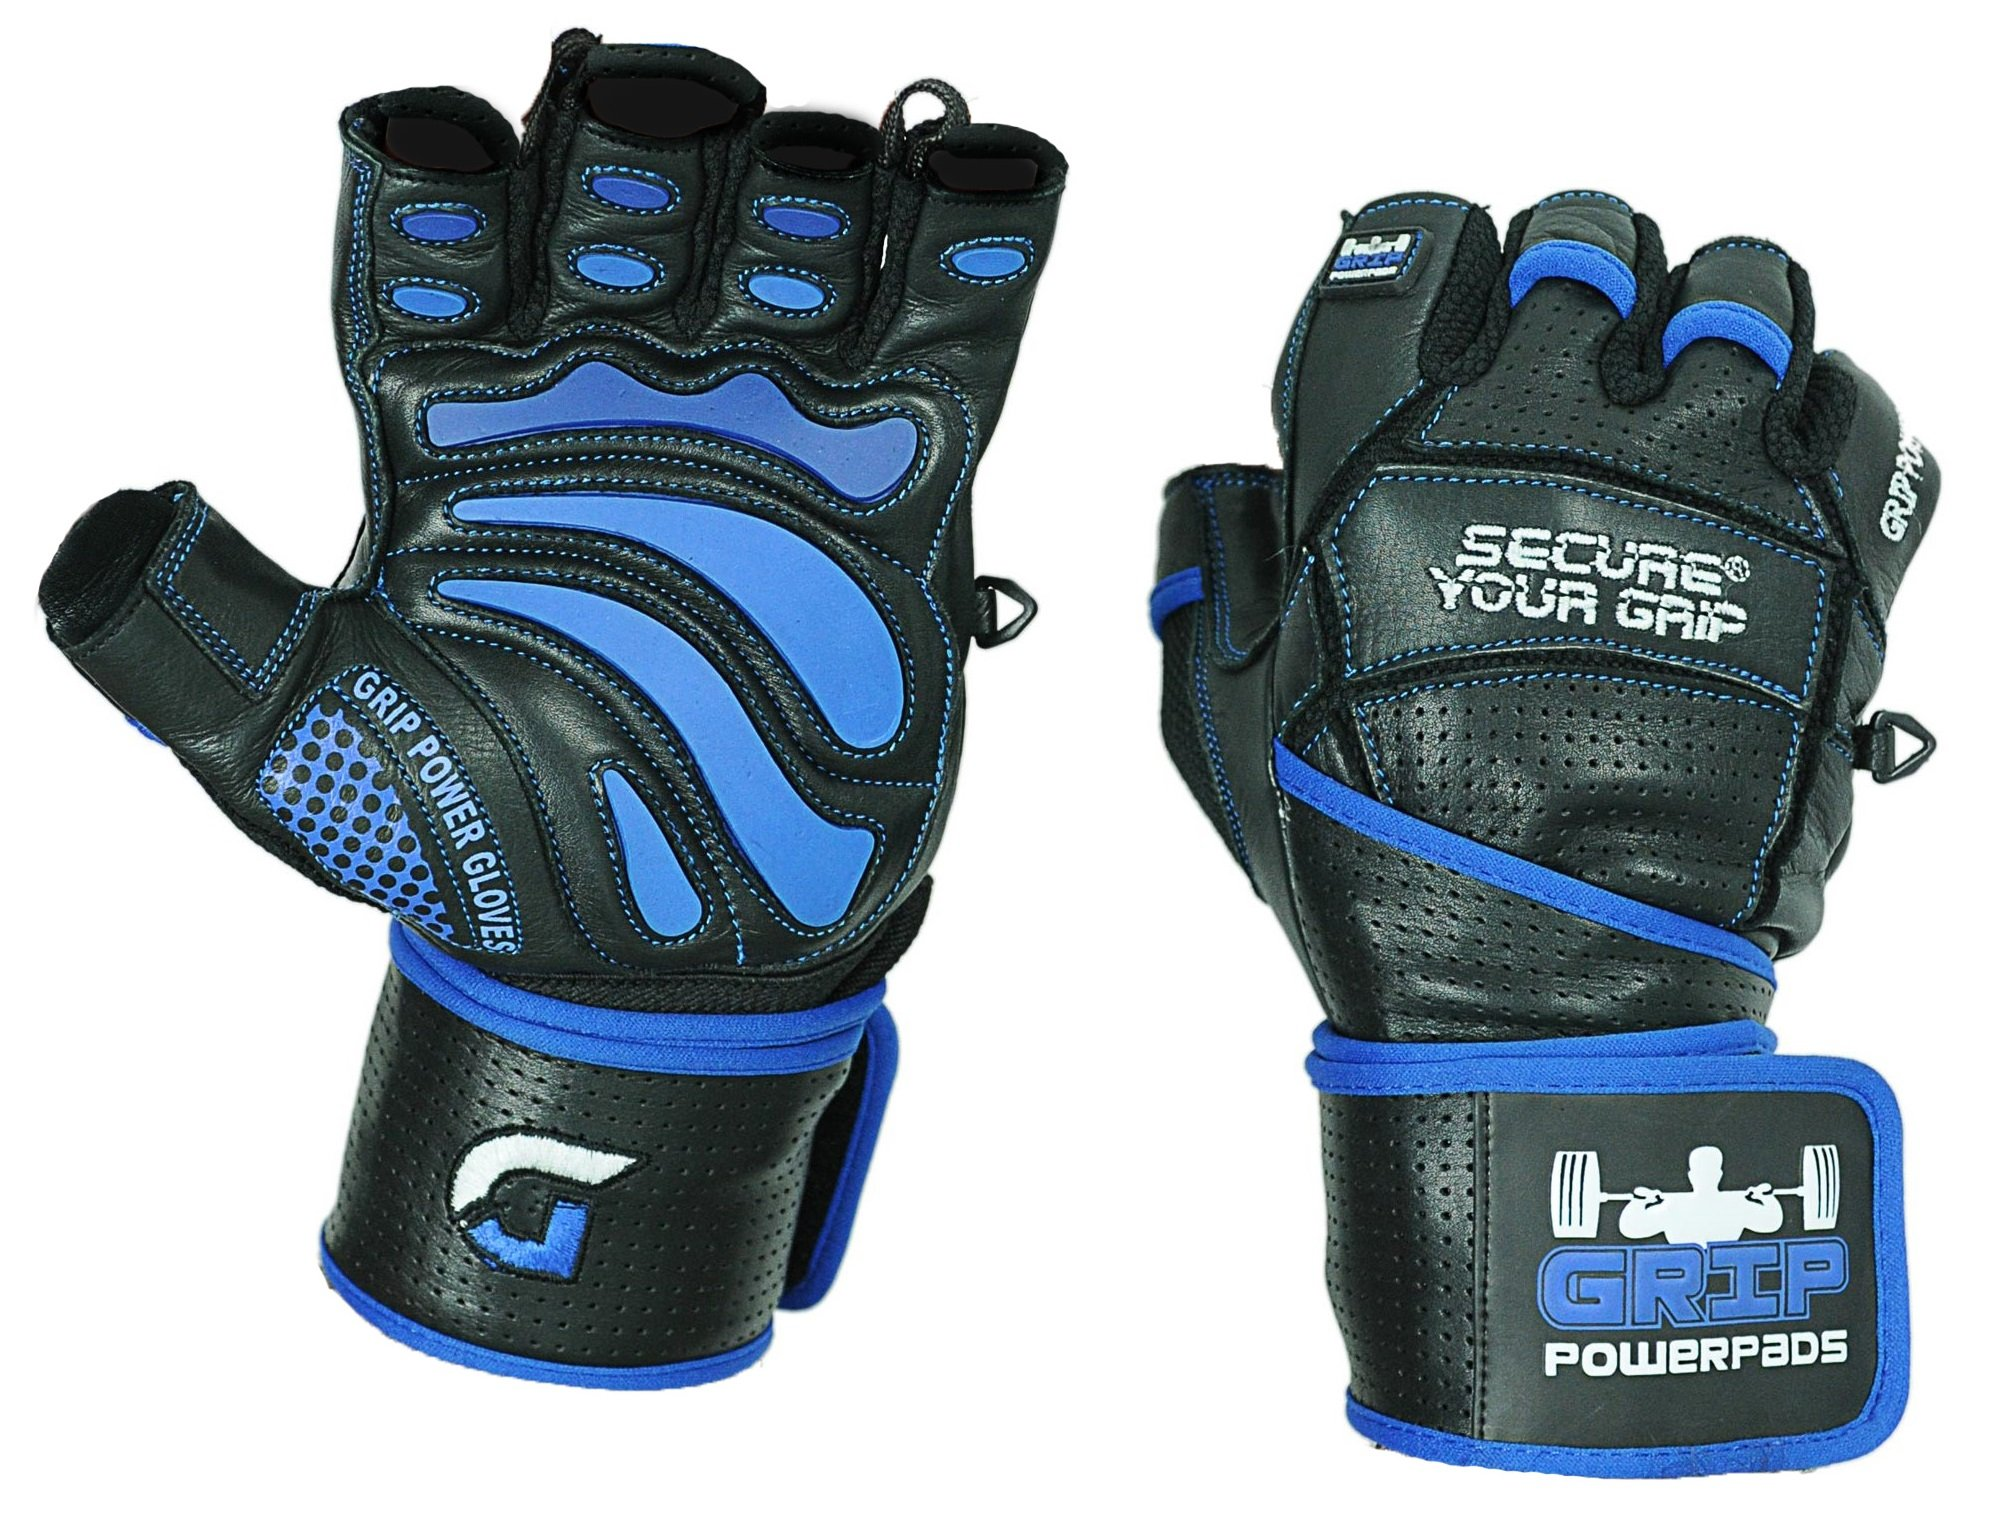 Grip Power Pads Elite Leather Gym Gloves with Built-in 2'' Wide Wrist Wraps - Leather Glove Design for Weight Lifting, Power Lifting, Bodybuilding & Strength Training Workout Exercises (Medium) by Grip Power Pads